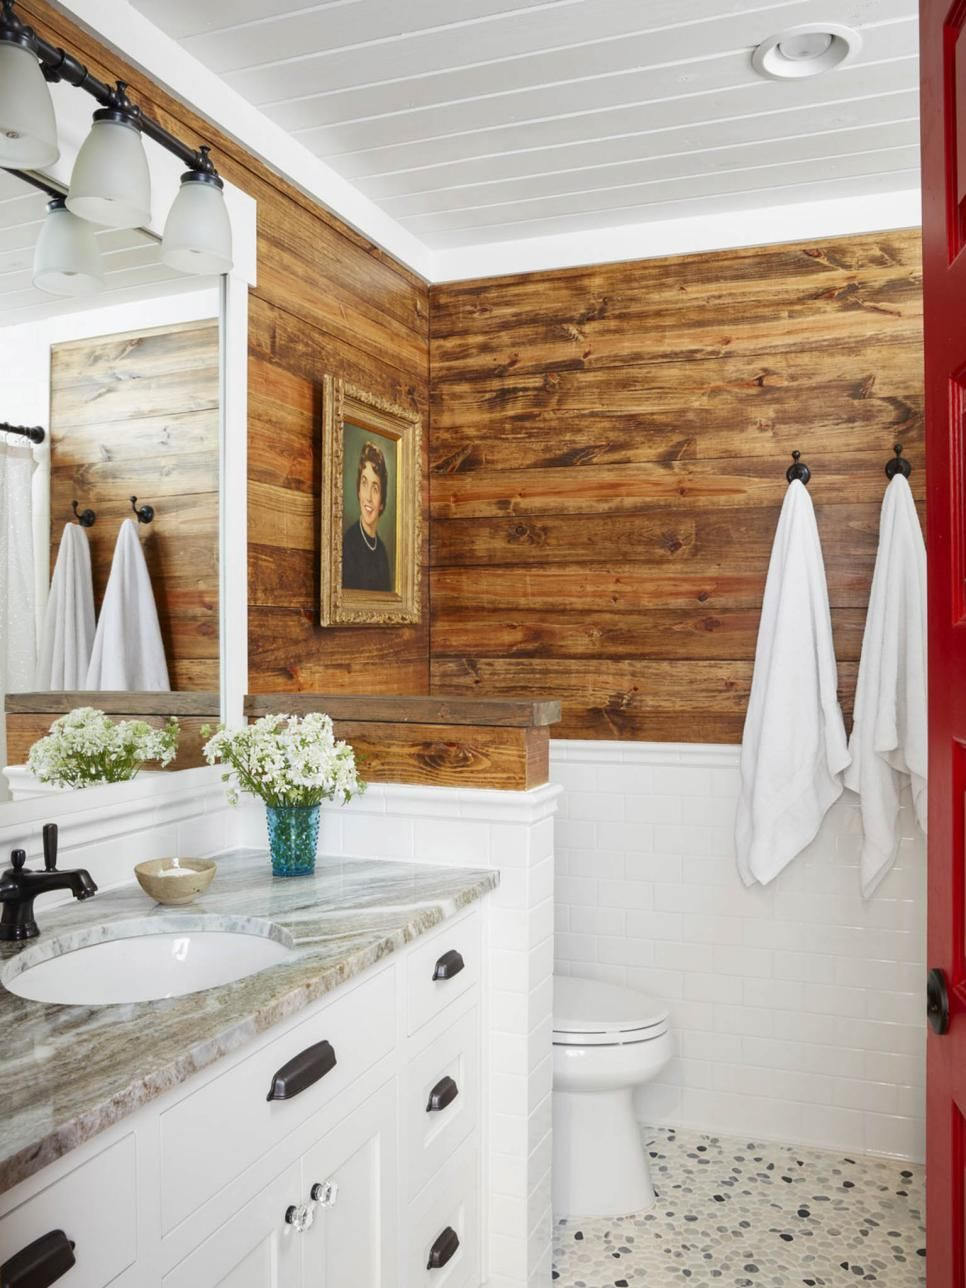 Cabin inside bathroom - Hgtv Magazine Takes You Inside A Lake House That Pairs Rustic Touches With Modern Decor